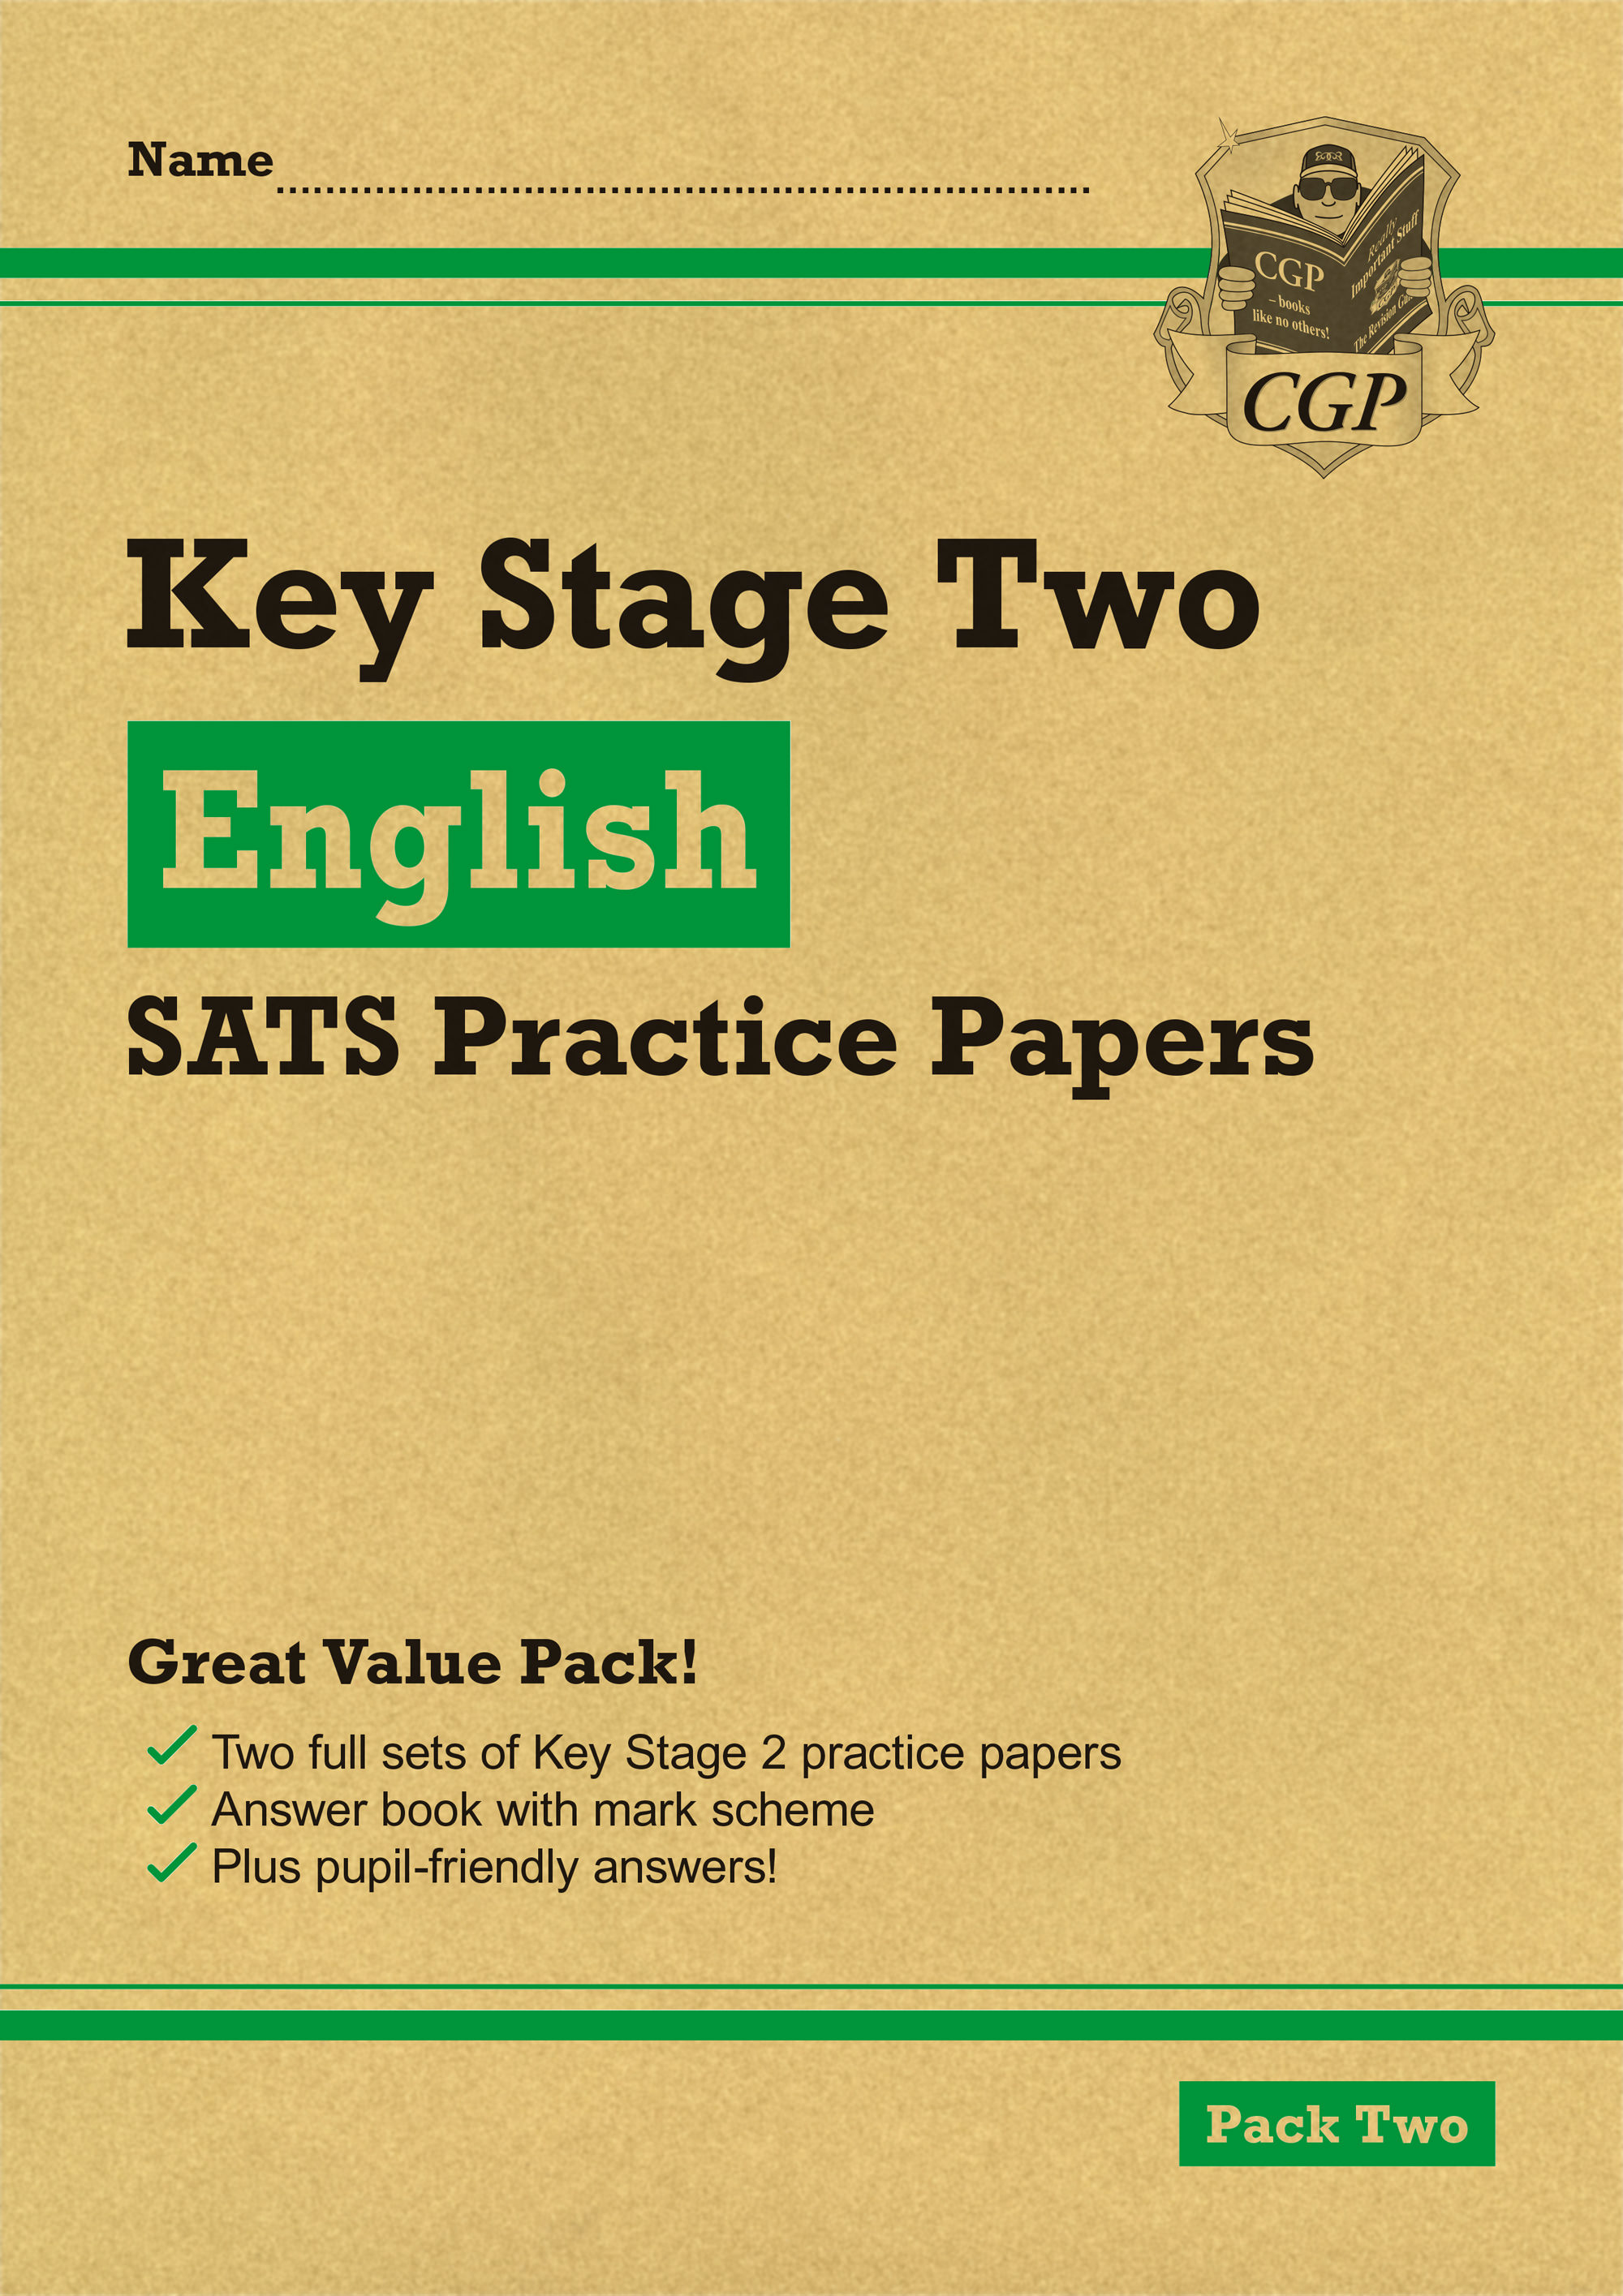 EHGP26 - New KS2 English SATS Practice Papers: Pack 2 (for the 2019 tests)